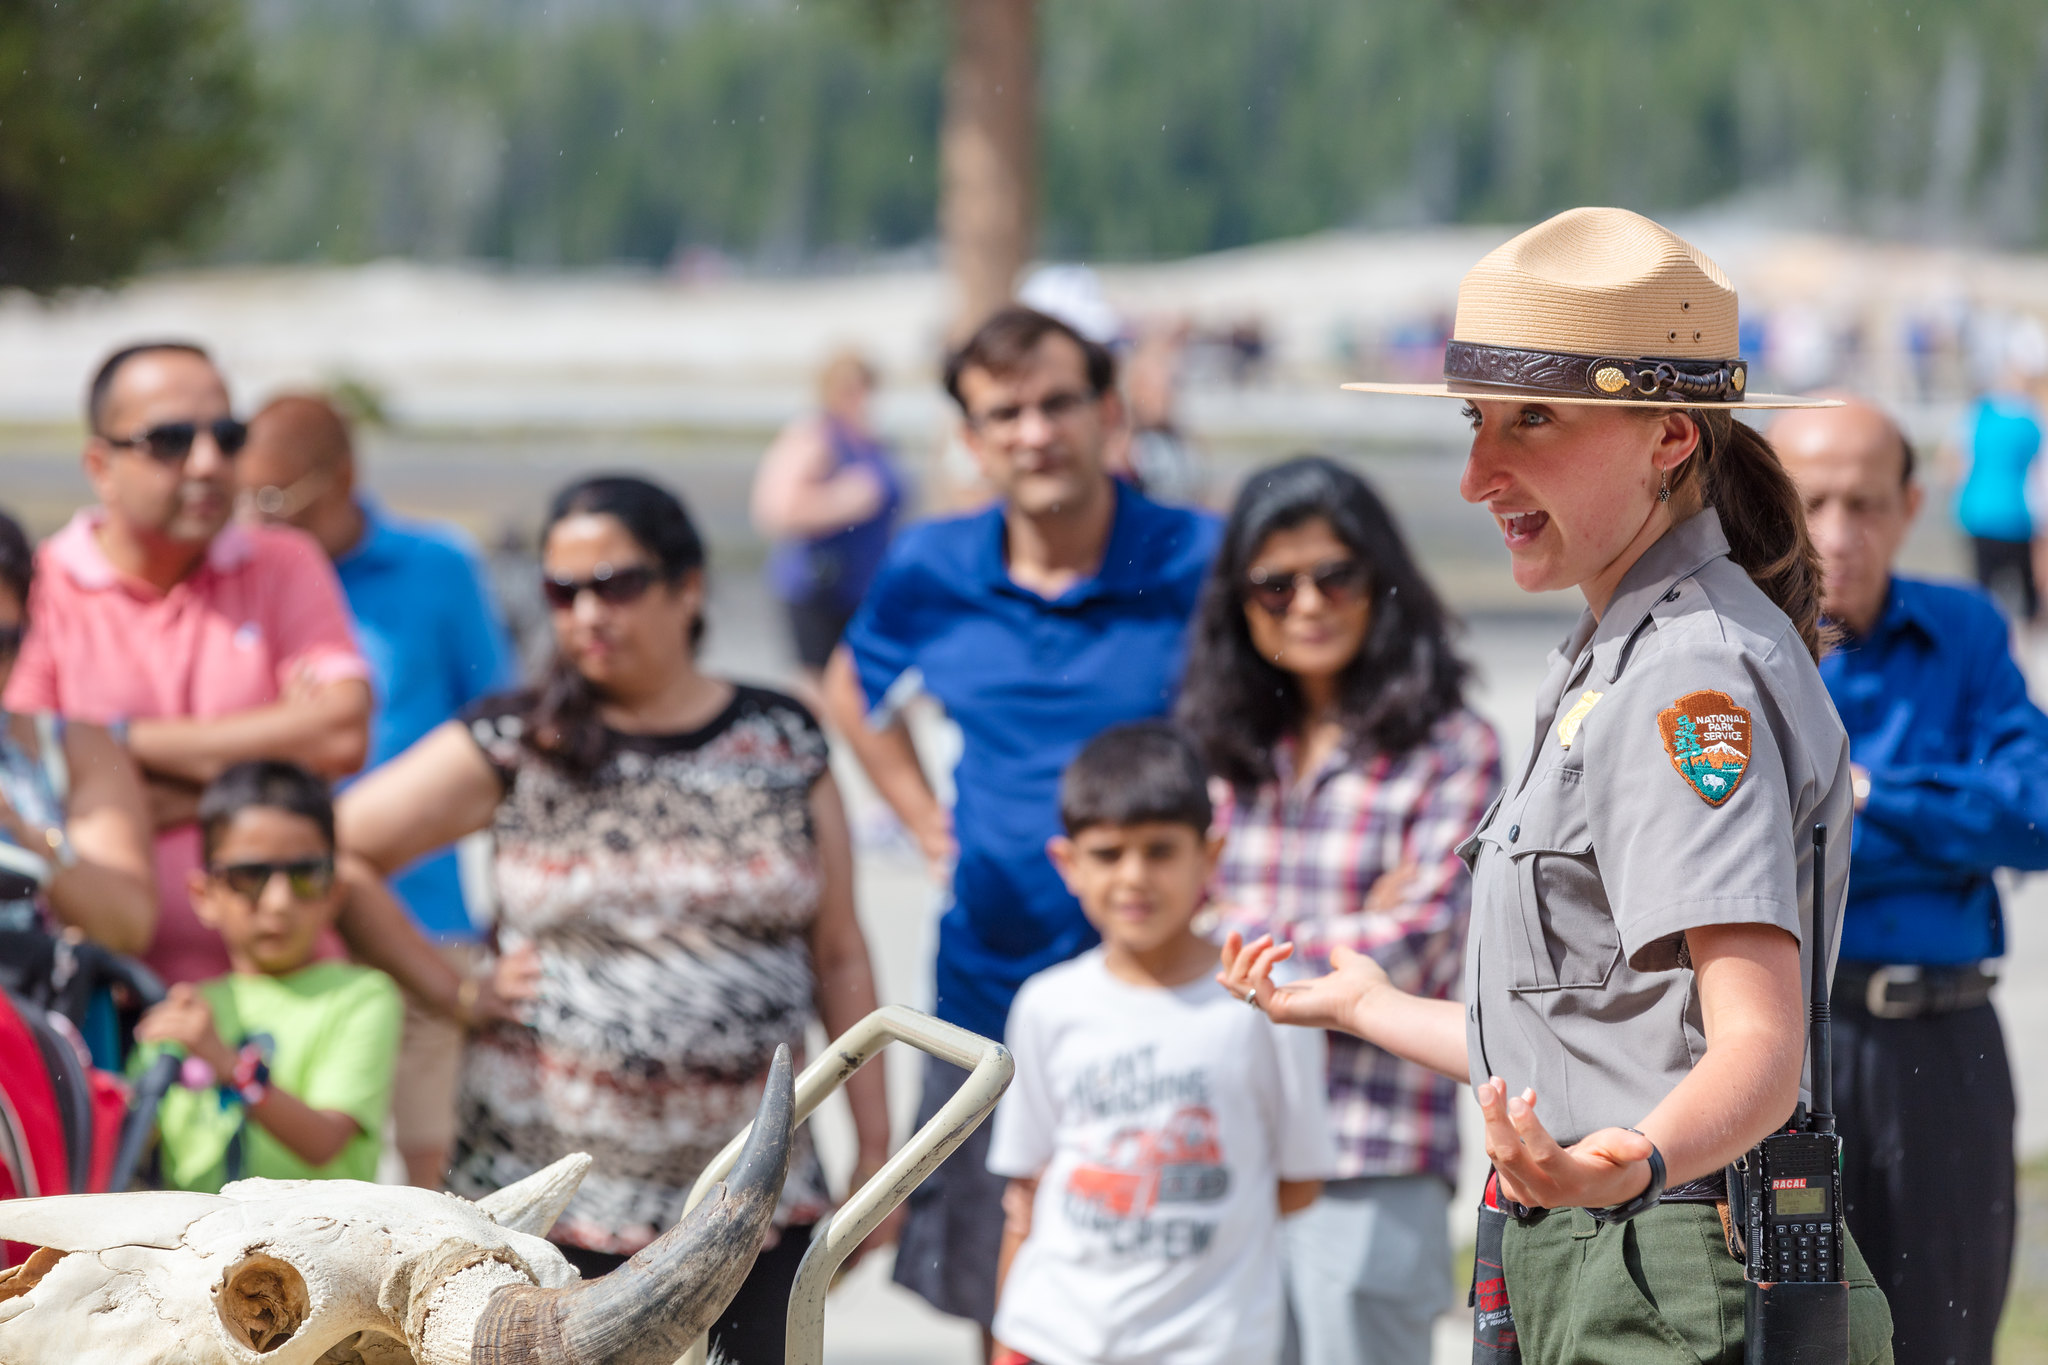 Ranger Sklyer gives a wildlife safety talk at Old Faithful Visitor Education Center